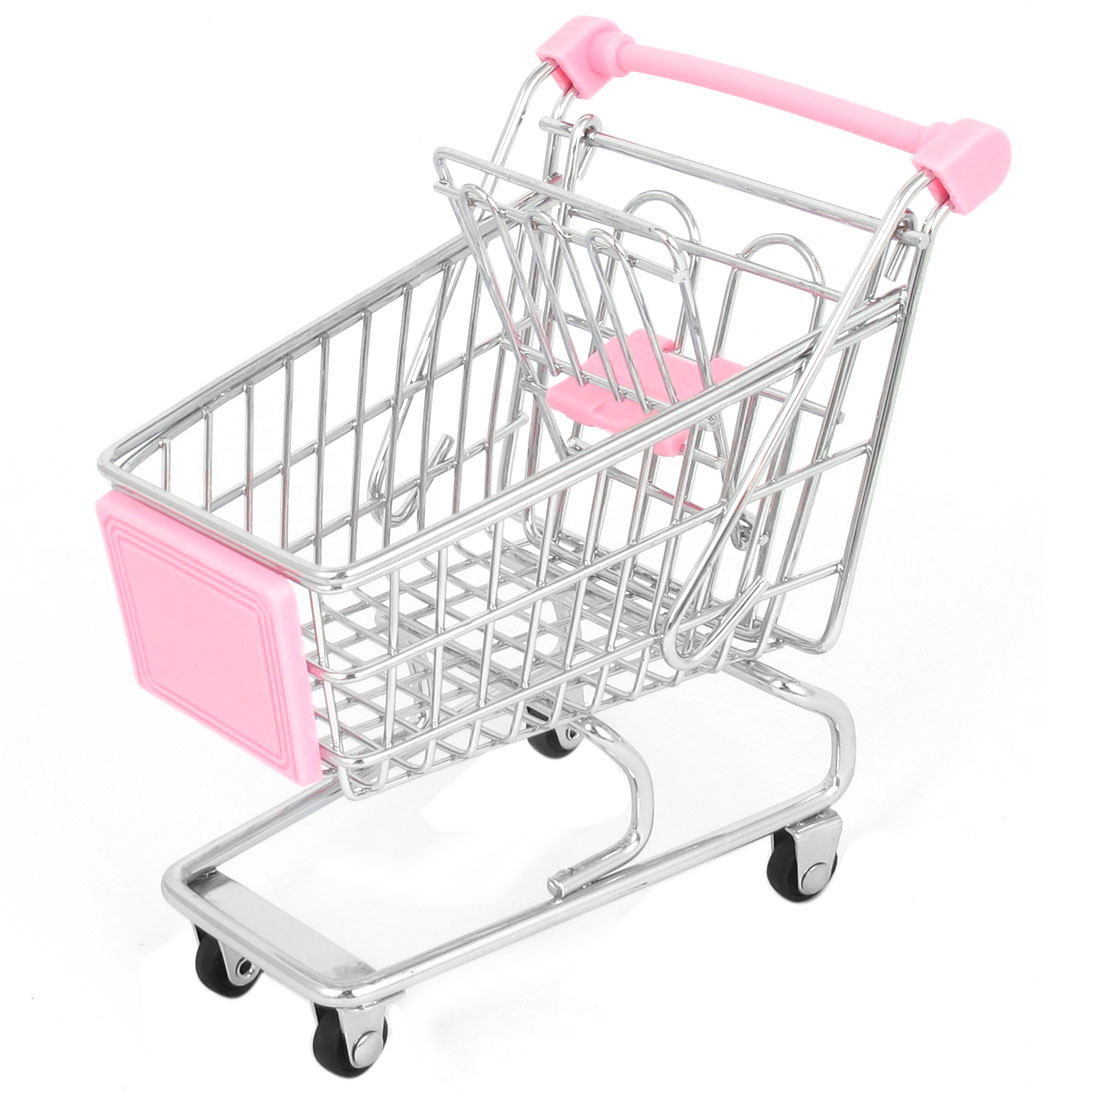 Stainless Steel Mini-Shopping Handcart Shopping Utility Cart Mode Pink